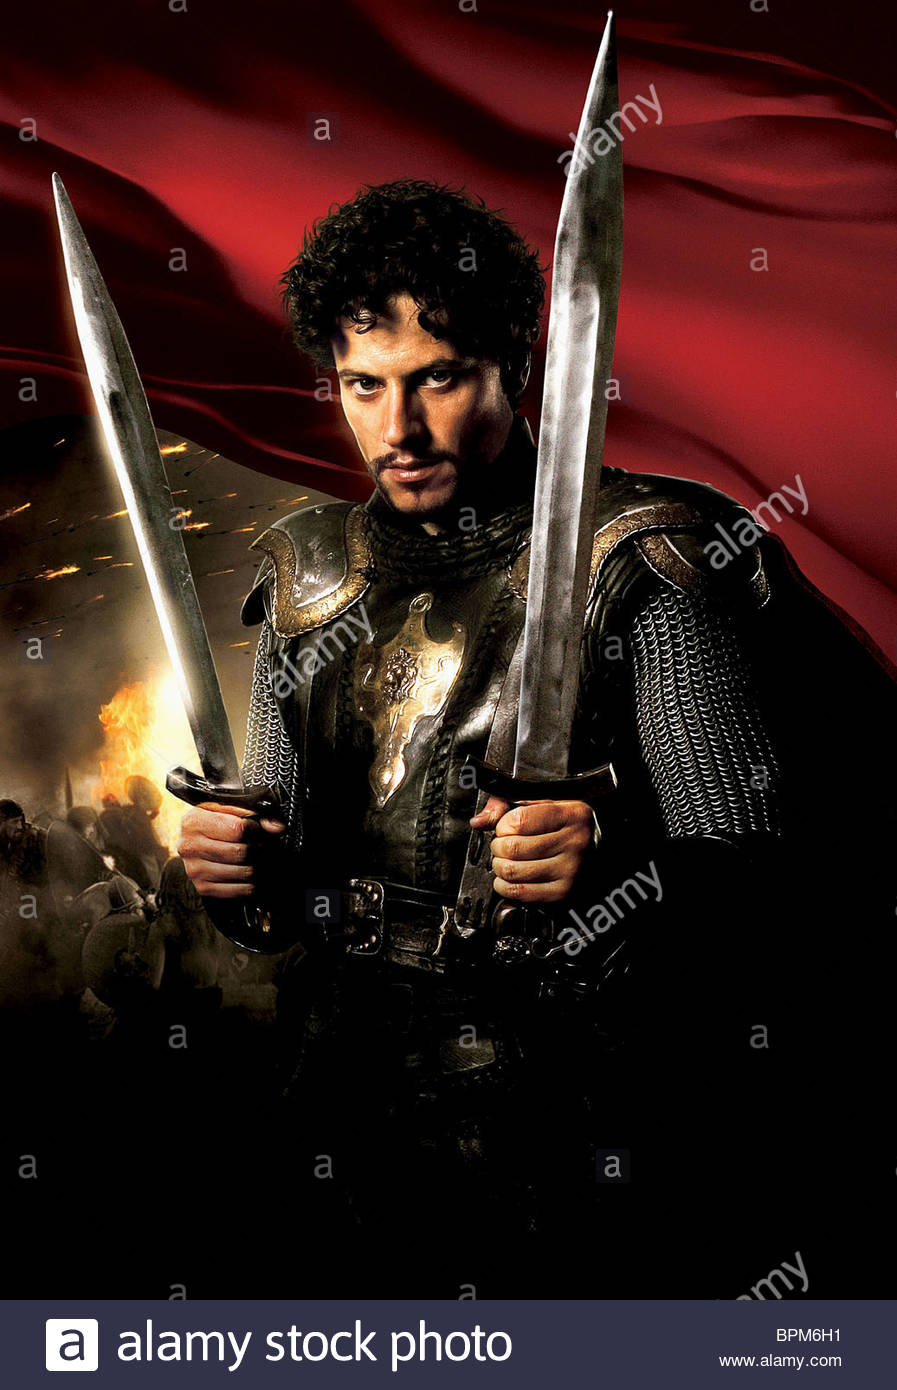 king arthur stock photos u0026 king arthur stock images alamy